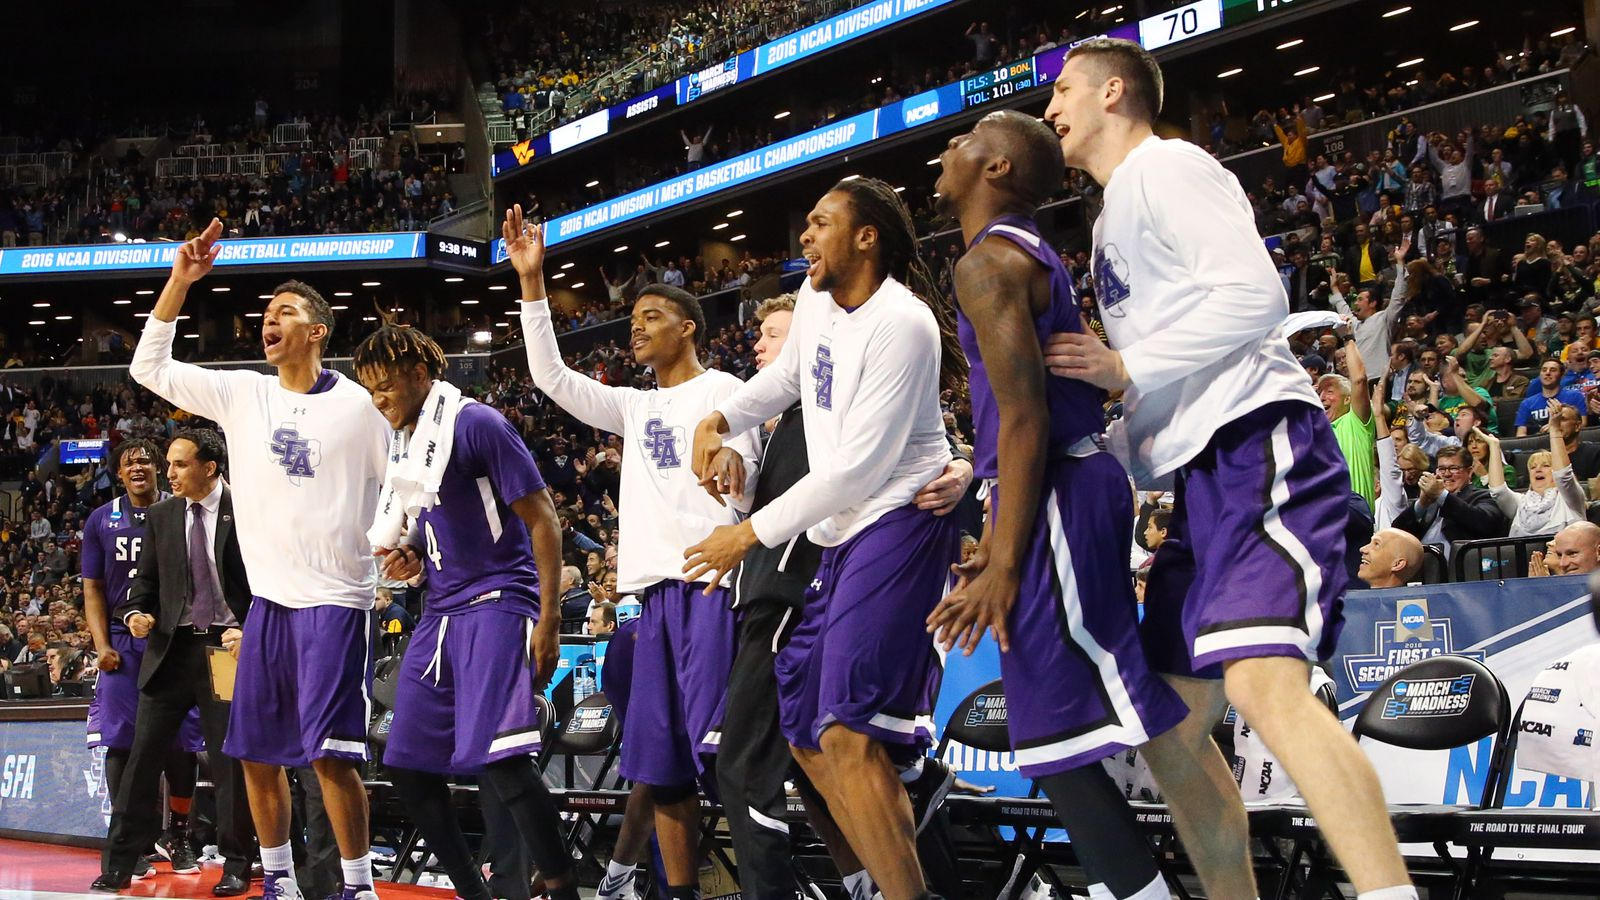 ncaa march madness betting lines nfl live carolina panthers